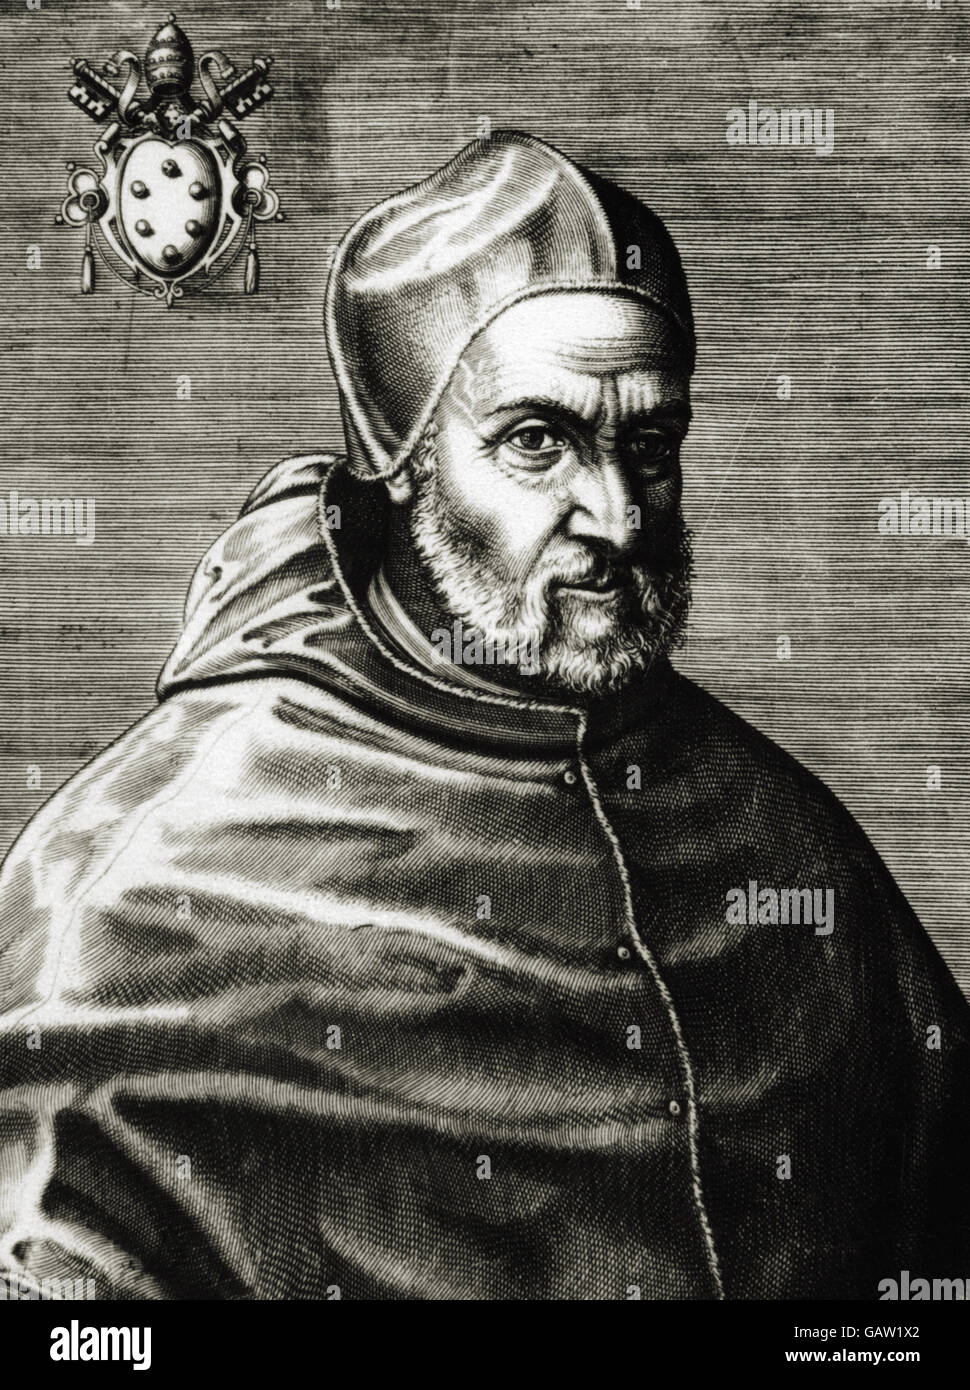 Pius IV (Milan ,1499-Rome, 1565). Italian pope, named Giovanni Angelo Medici. Portrait. Engraving - Stock Image